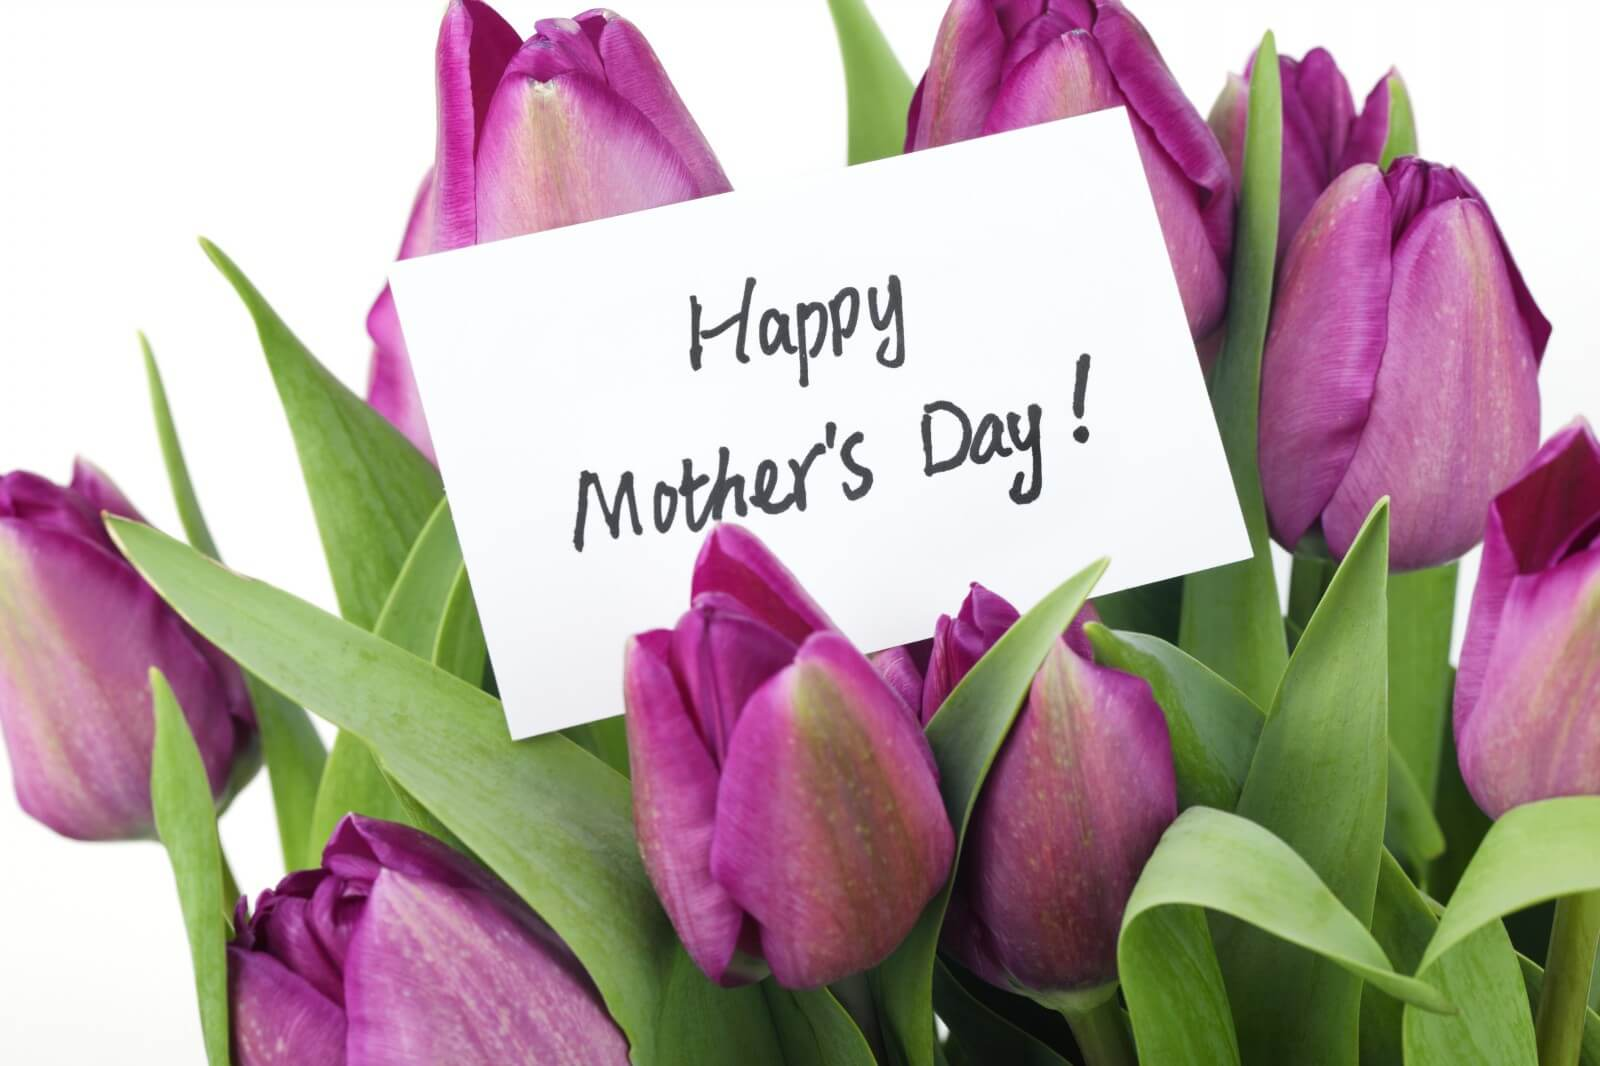 happy mothers day hd wallpaper image